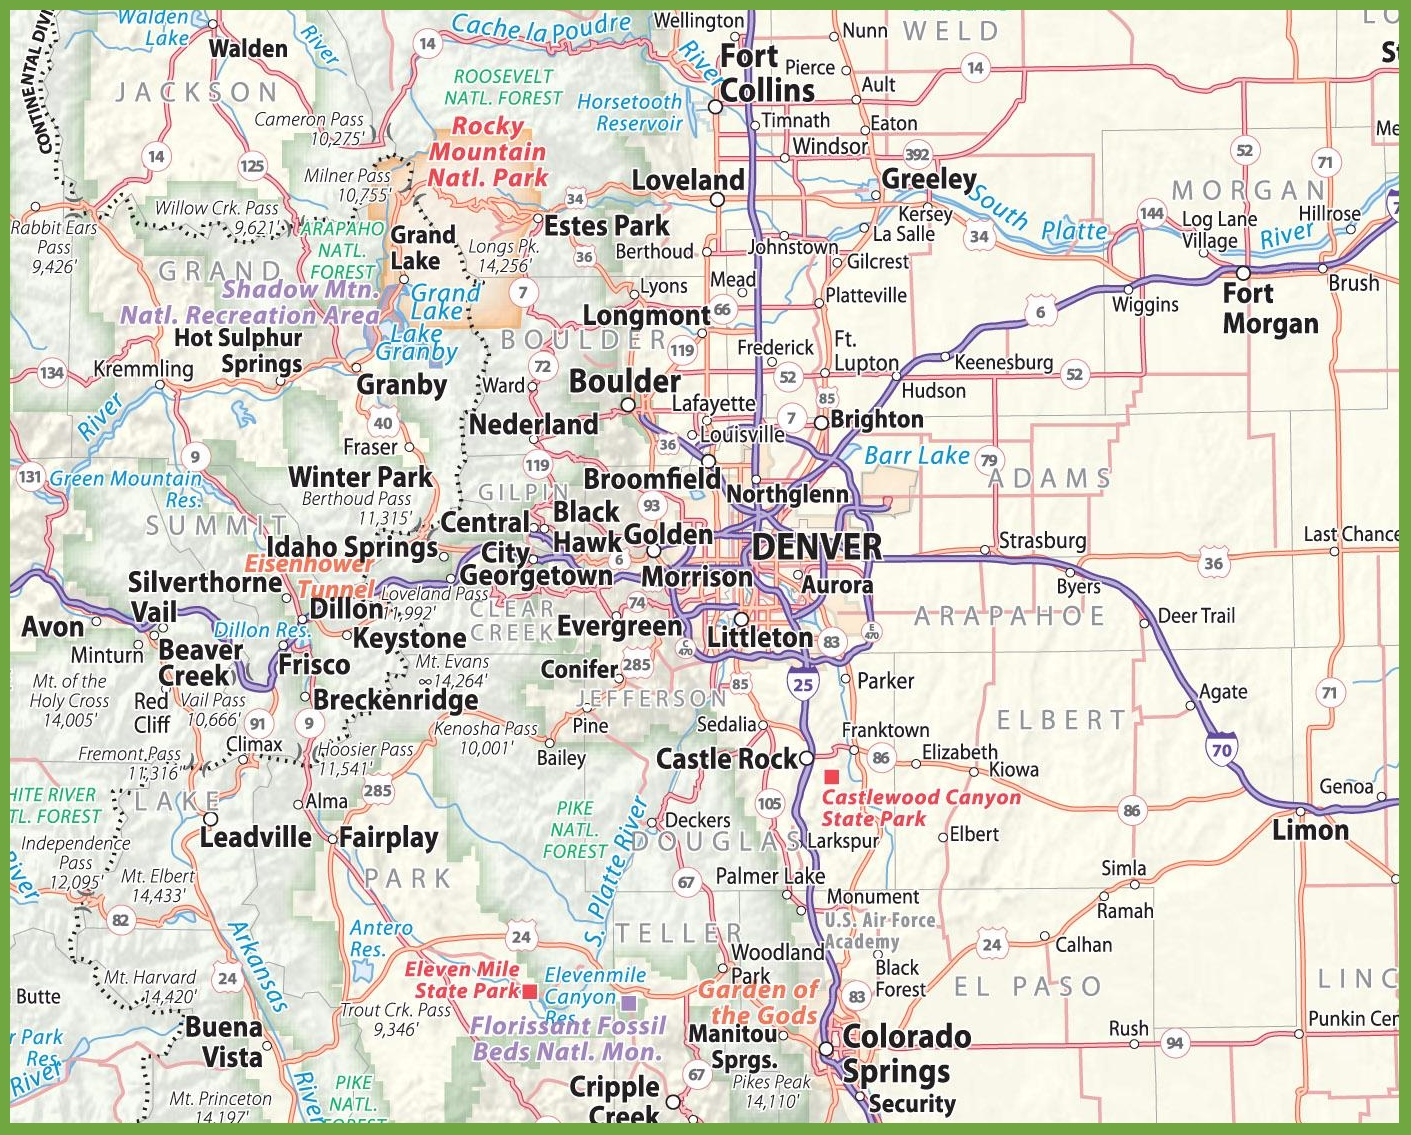 Denver area road map on san diego, boulder colorado map, centennial colorado map, missoula montana map, rocky mountains, evans colorado map, salt lake city, las vegas map, lakewood colorado map, colorado state map, casper wyoming map, elizabeth colorado map, colorado springs, estes park colorado map, denver tech center, colorado rockies map, new orleans, castle rock co map, federal heights colorado map, colorado us map, loveland colorado map, sterling colorado map, san antonio, usa map, united states map, kansas city,